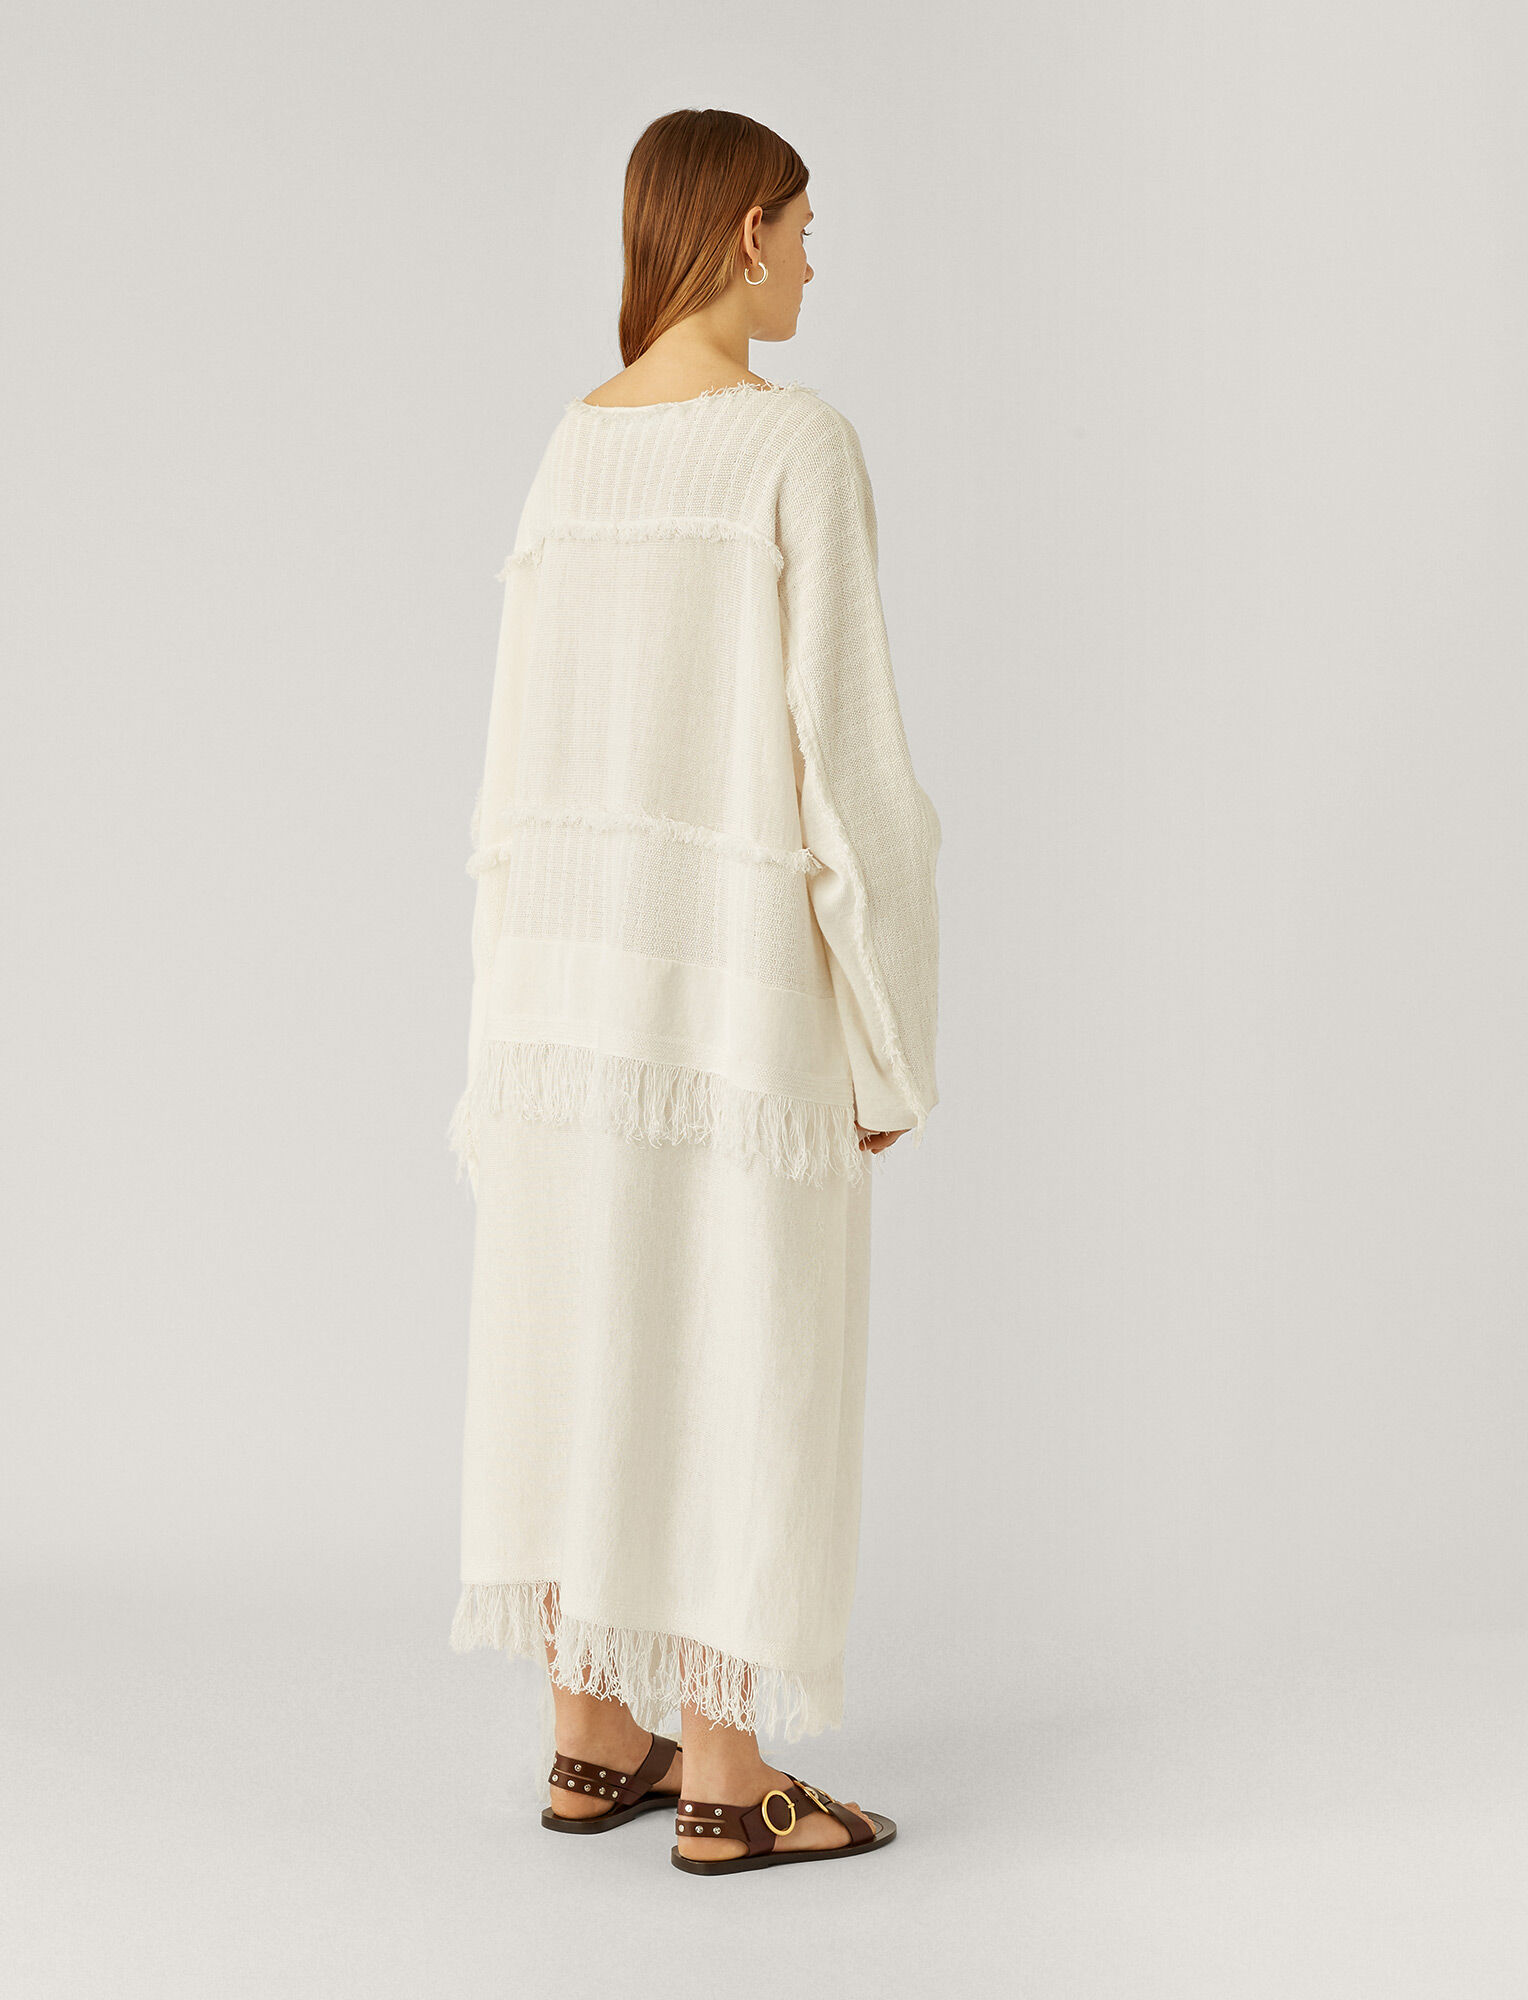 Joseph, Kaftan Crispy Cotton Knit, in WHITE